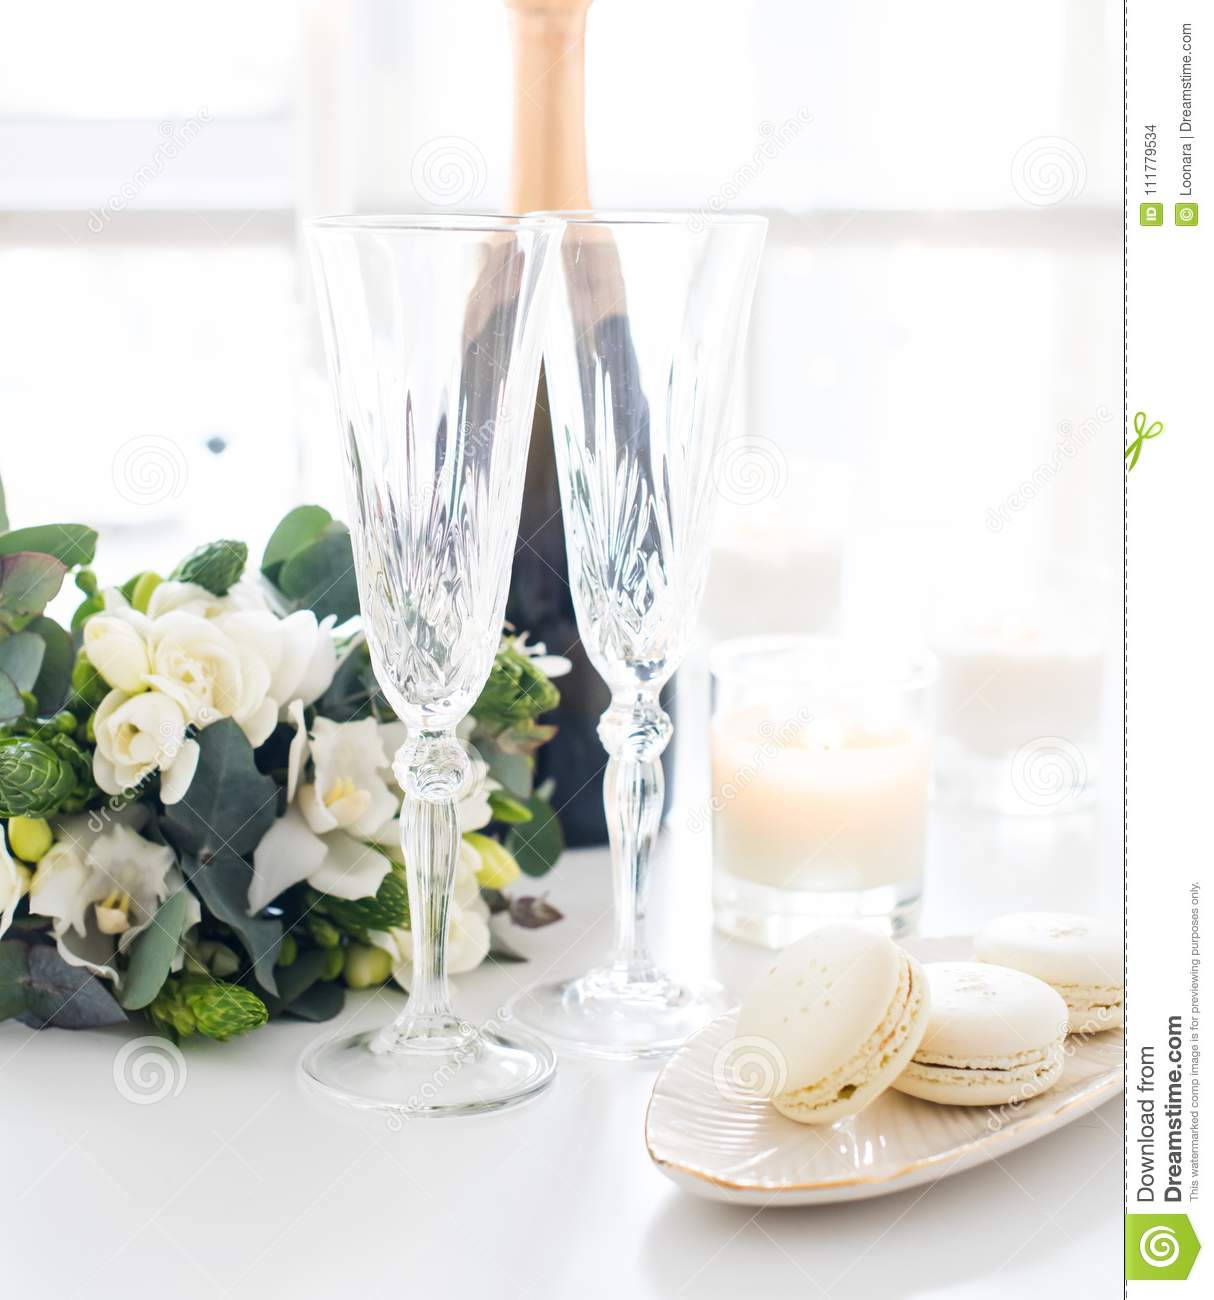 White Luxury Wedding Decor With Wonderful And Beautiful: Beautiful Wedding Decoration With Champagne And Flowers